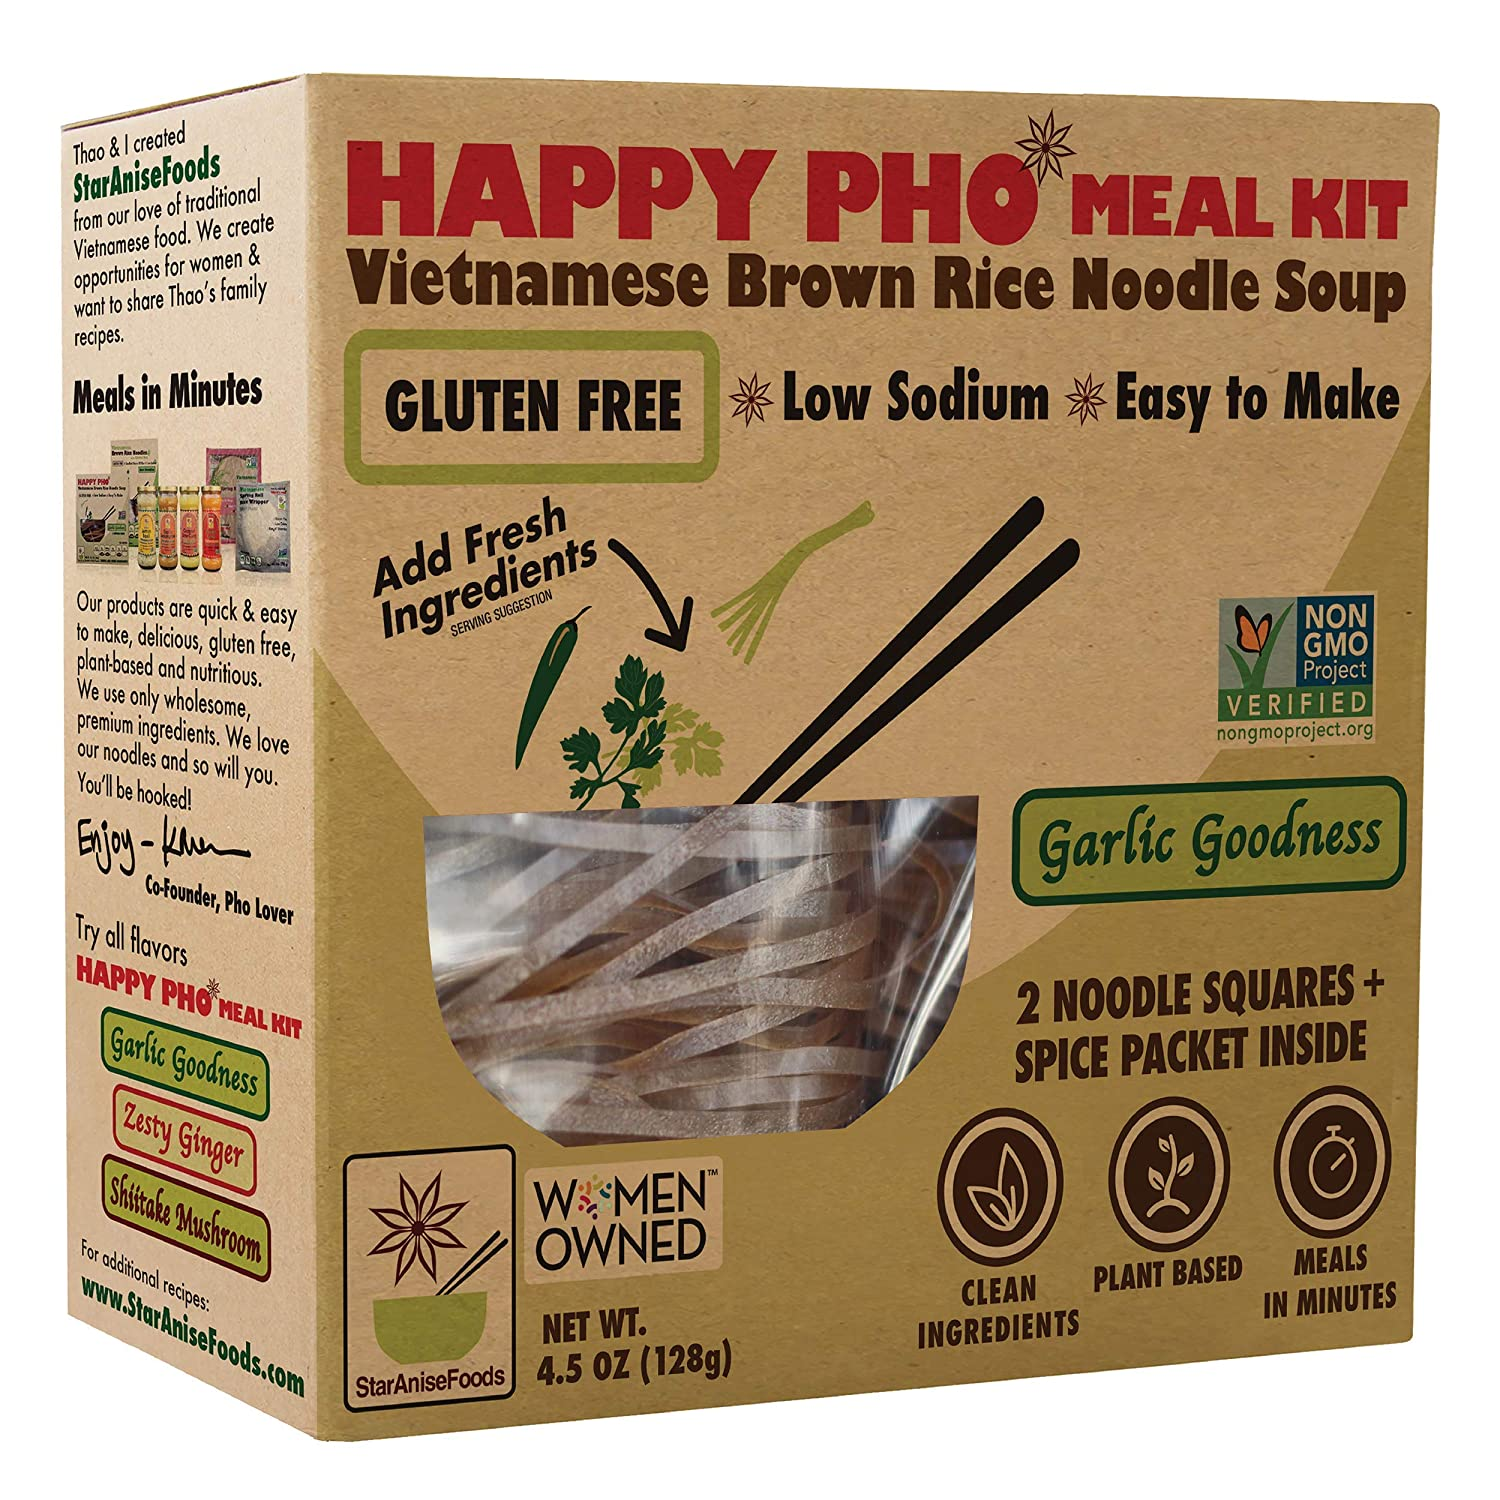 Star Anise Foods Gluten Free Asian Noodles, Brown Rice Noodle Pho Kit, Quick Meals, Pad Thai Meal Kit Alternative, Instant Meal, Perfect for Pho Soup, Stir Fry or Salads, Pack of 6 (12 servings)